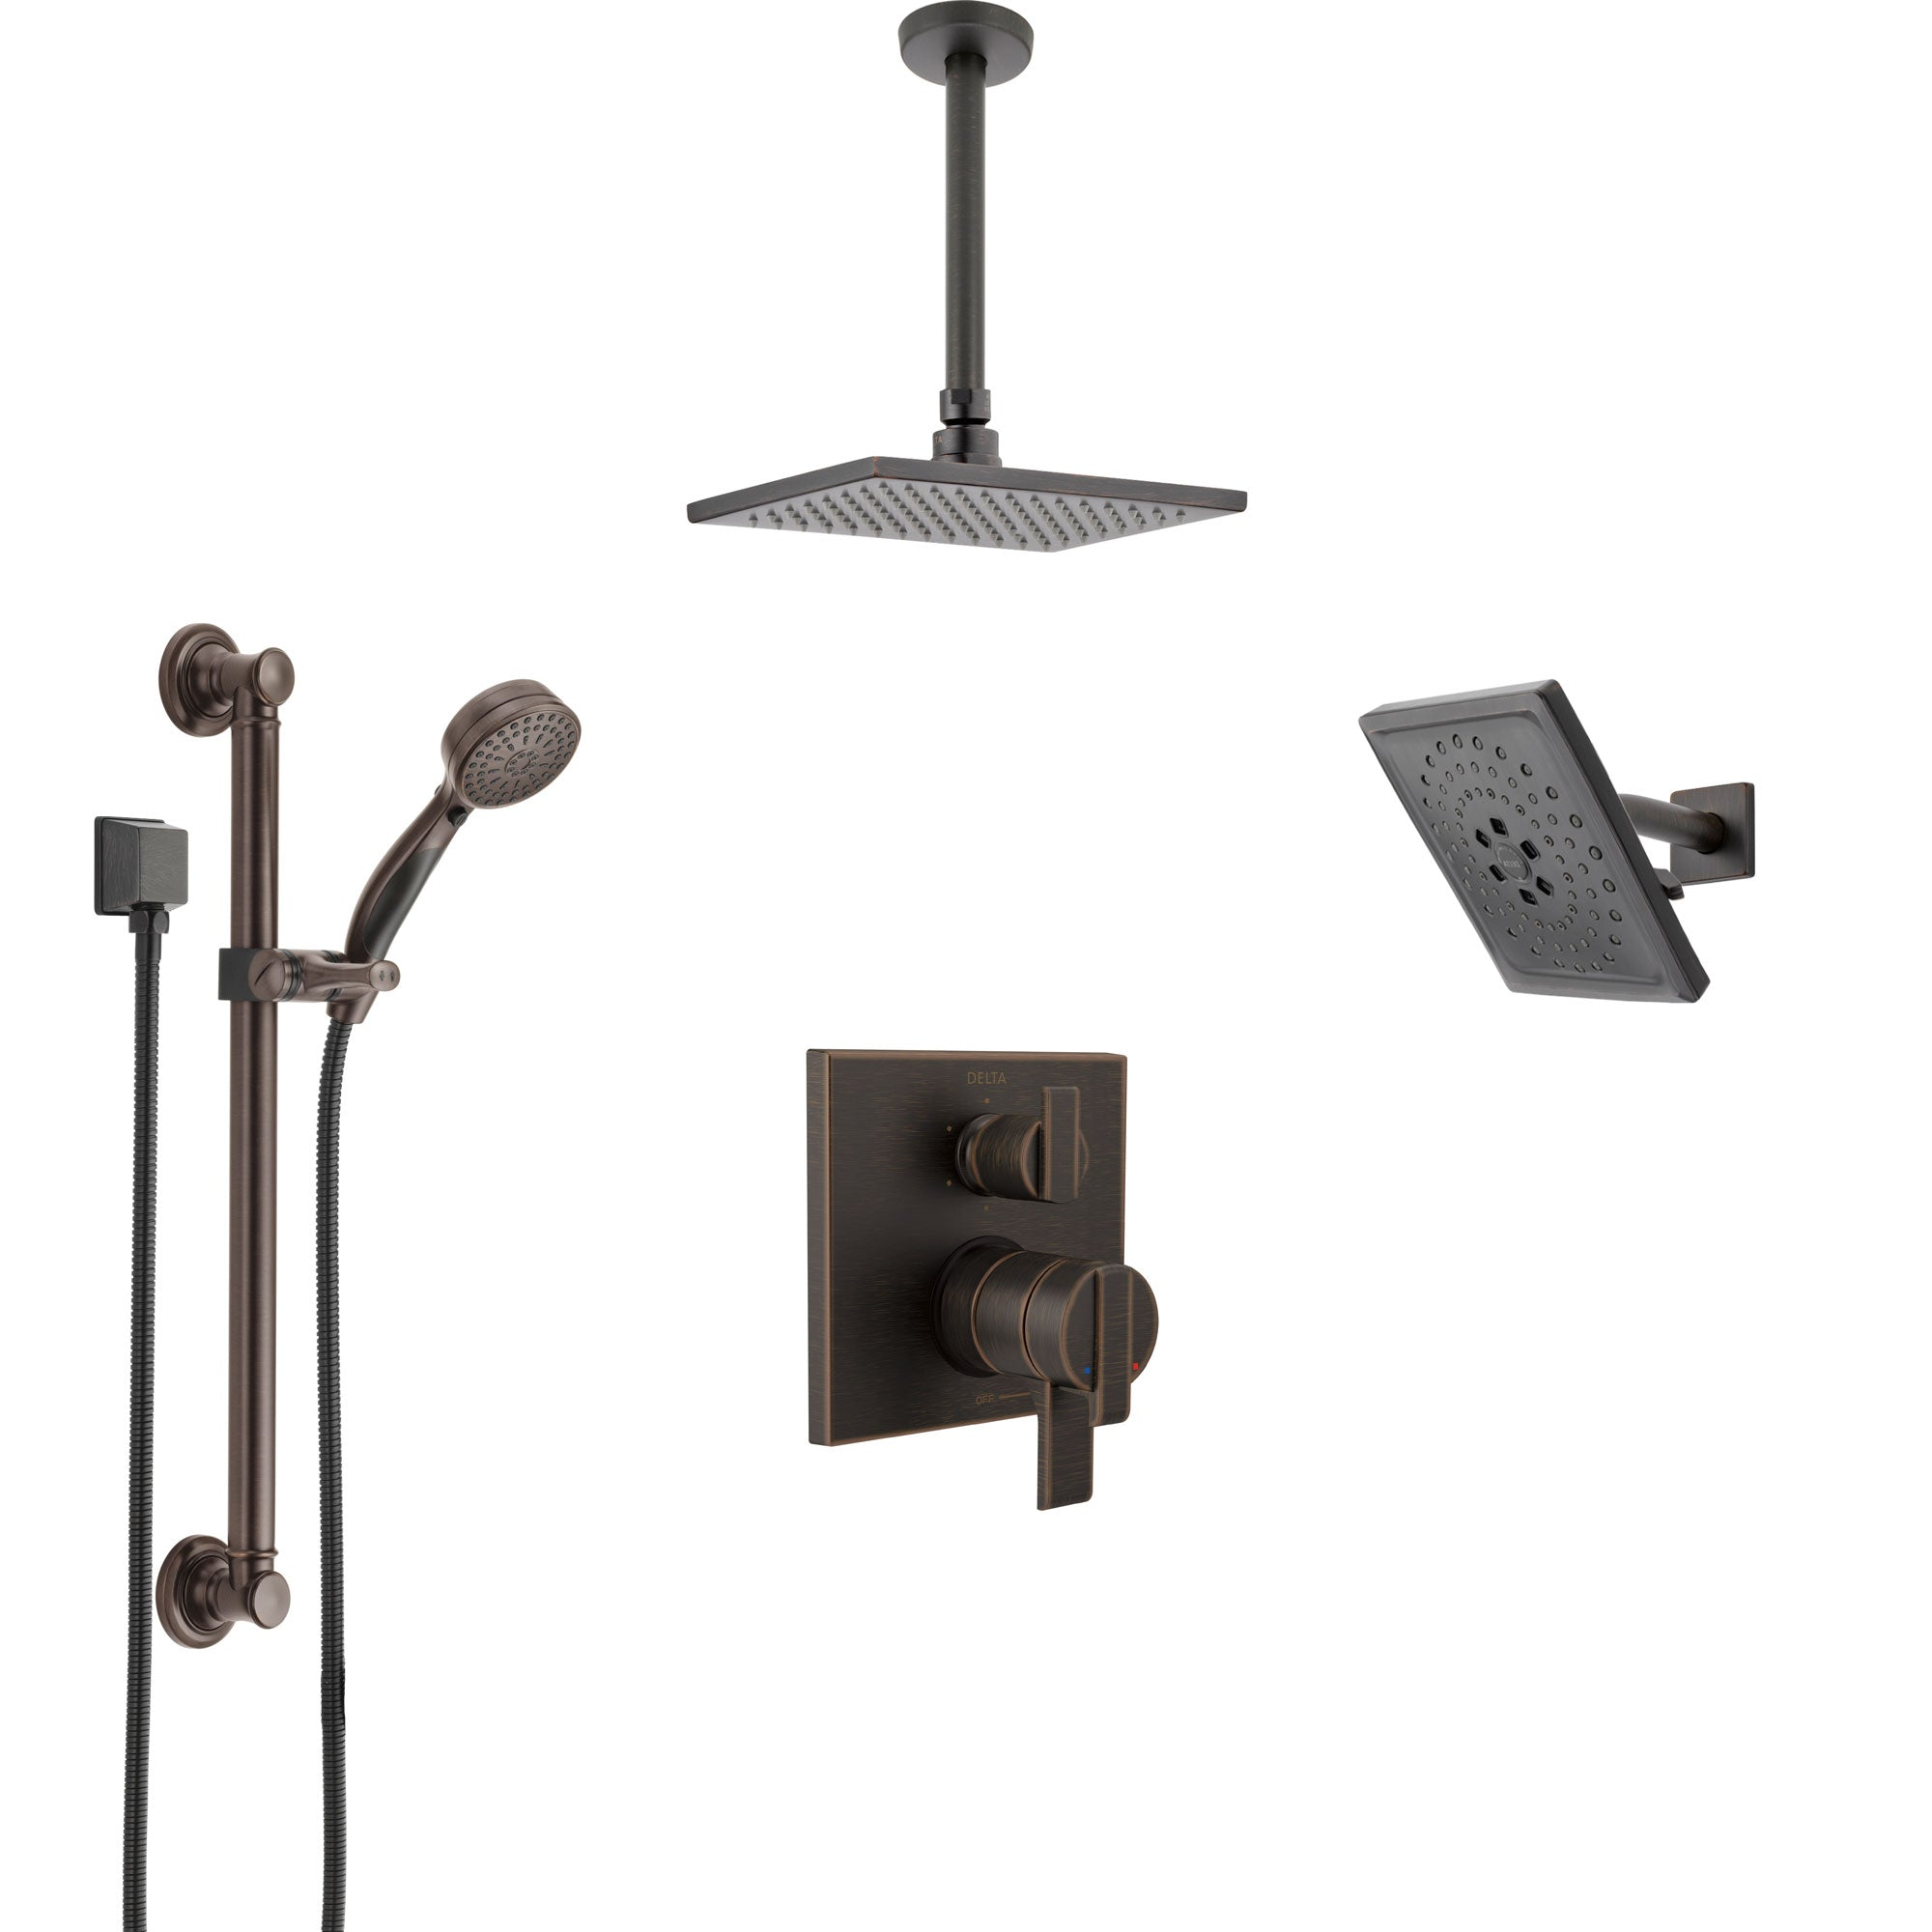 Delta Ara Venetian Bronze Shower System with Dual Control Handle, Integrated Diverter, Showerhead, Ceiling Showerhead, Grab Bar Hand Spray SS27967RB8